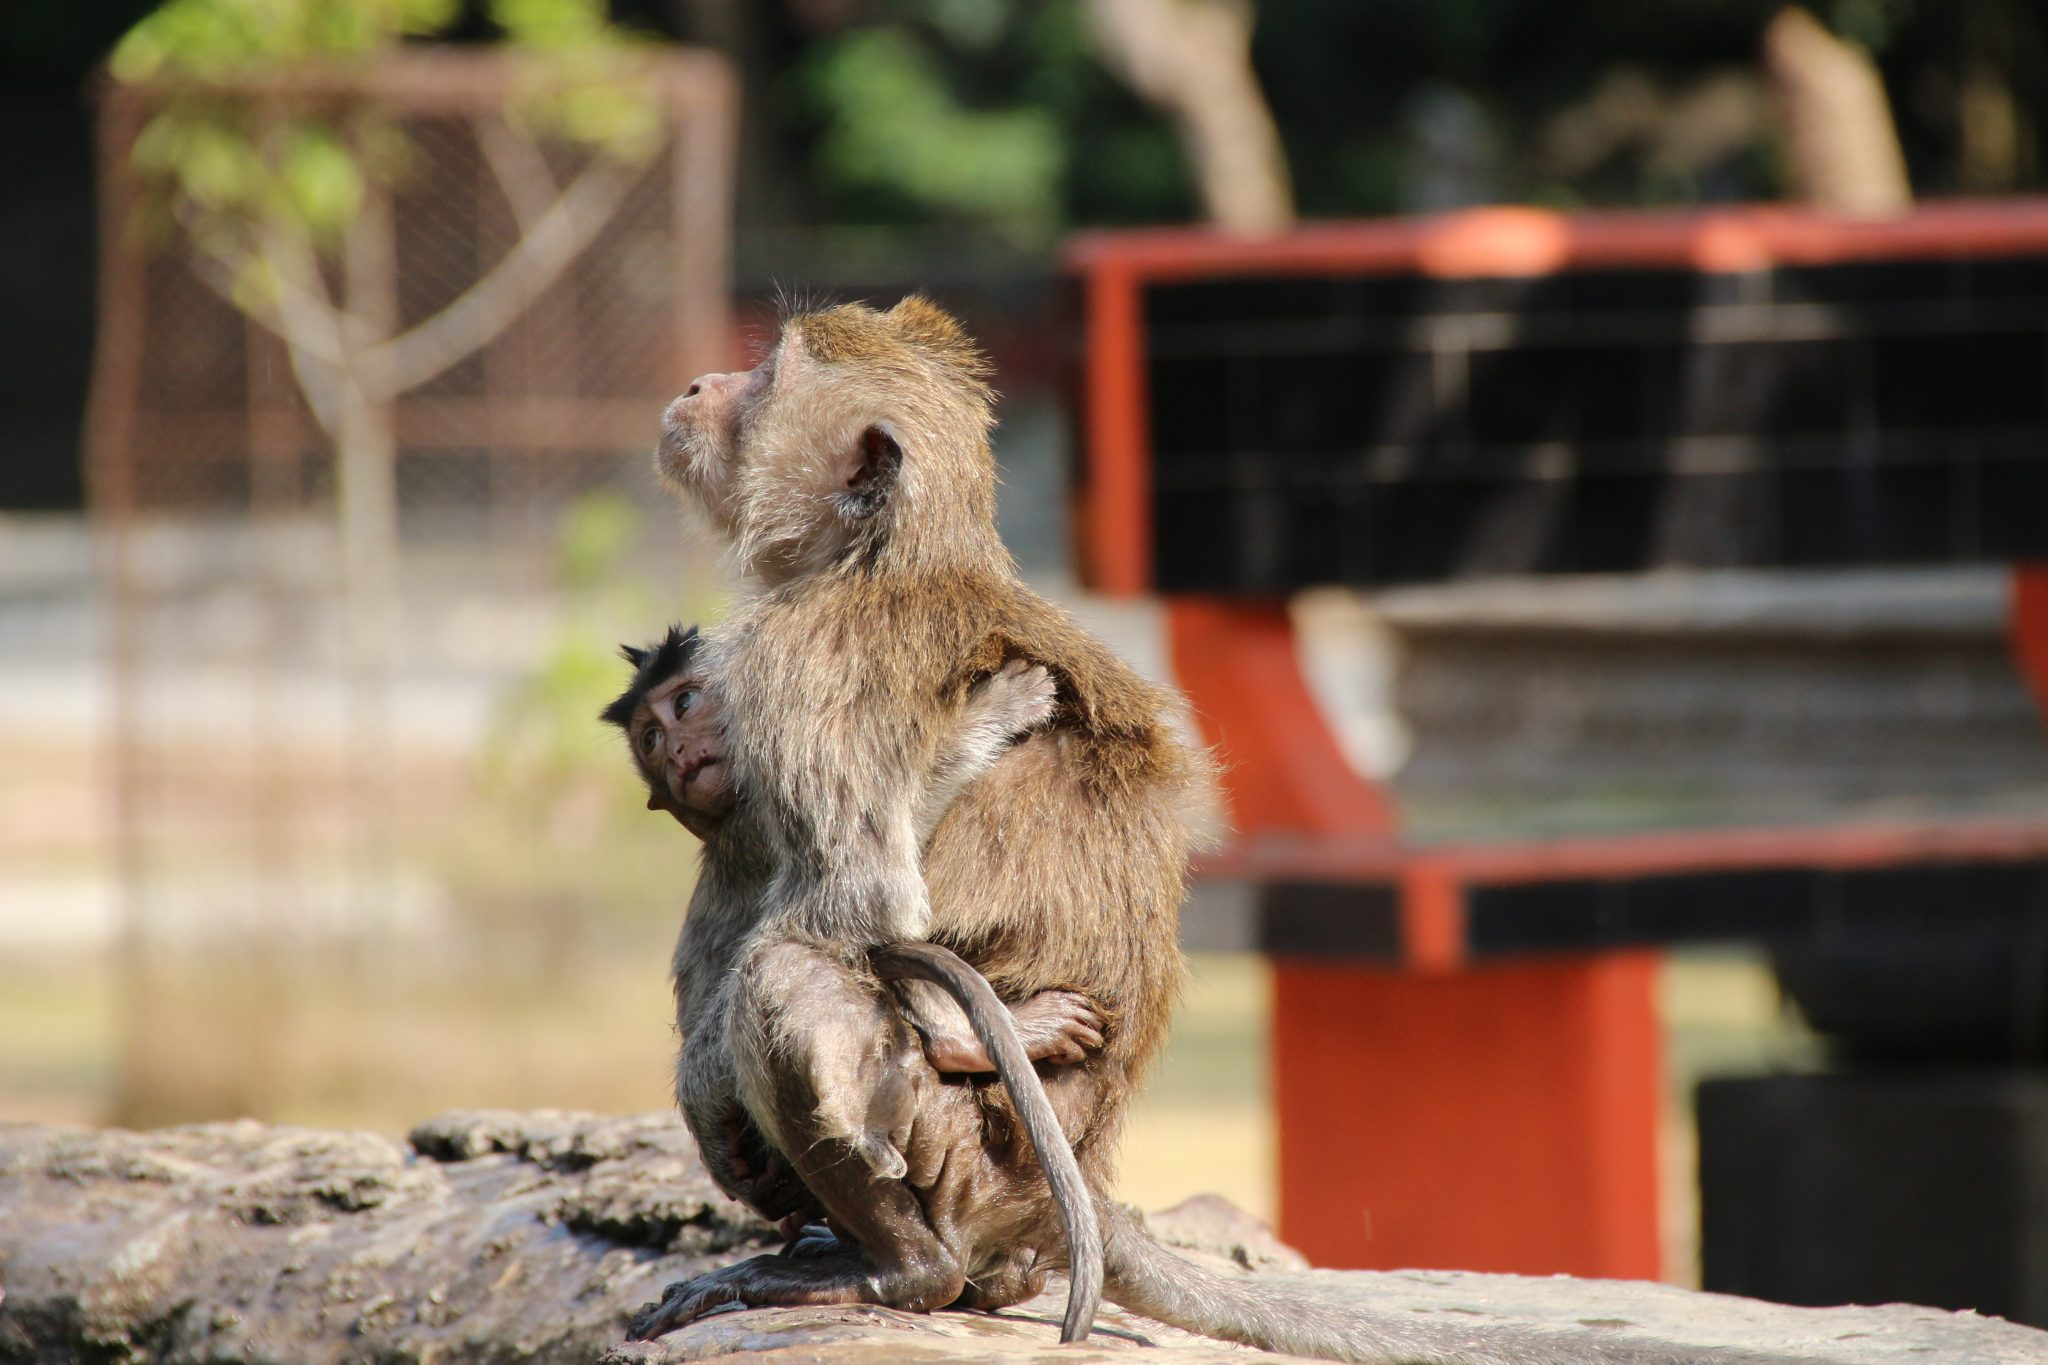 Mum & baby at the Alas Kedaton Monkey Forest